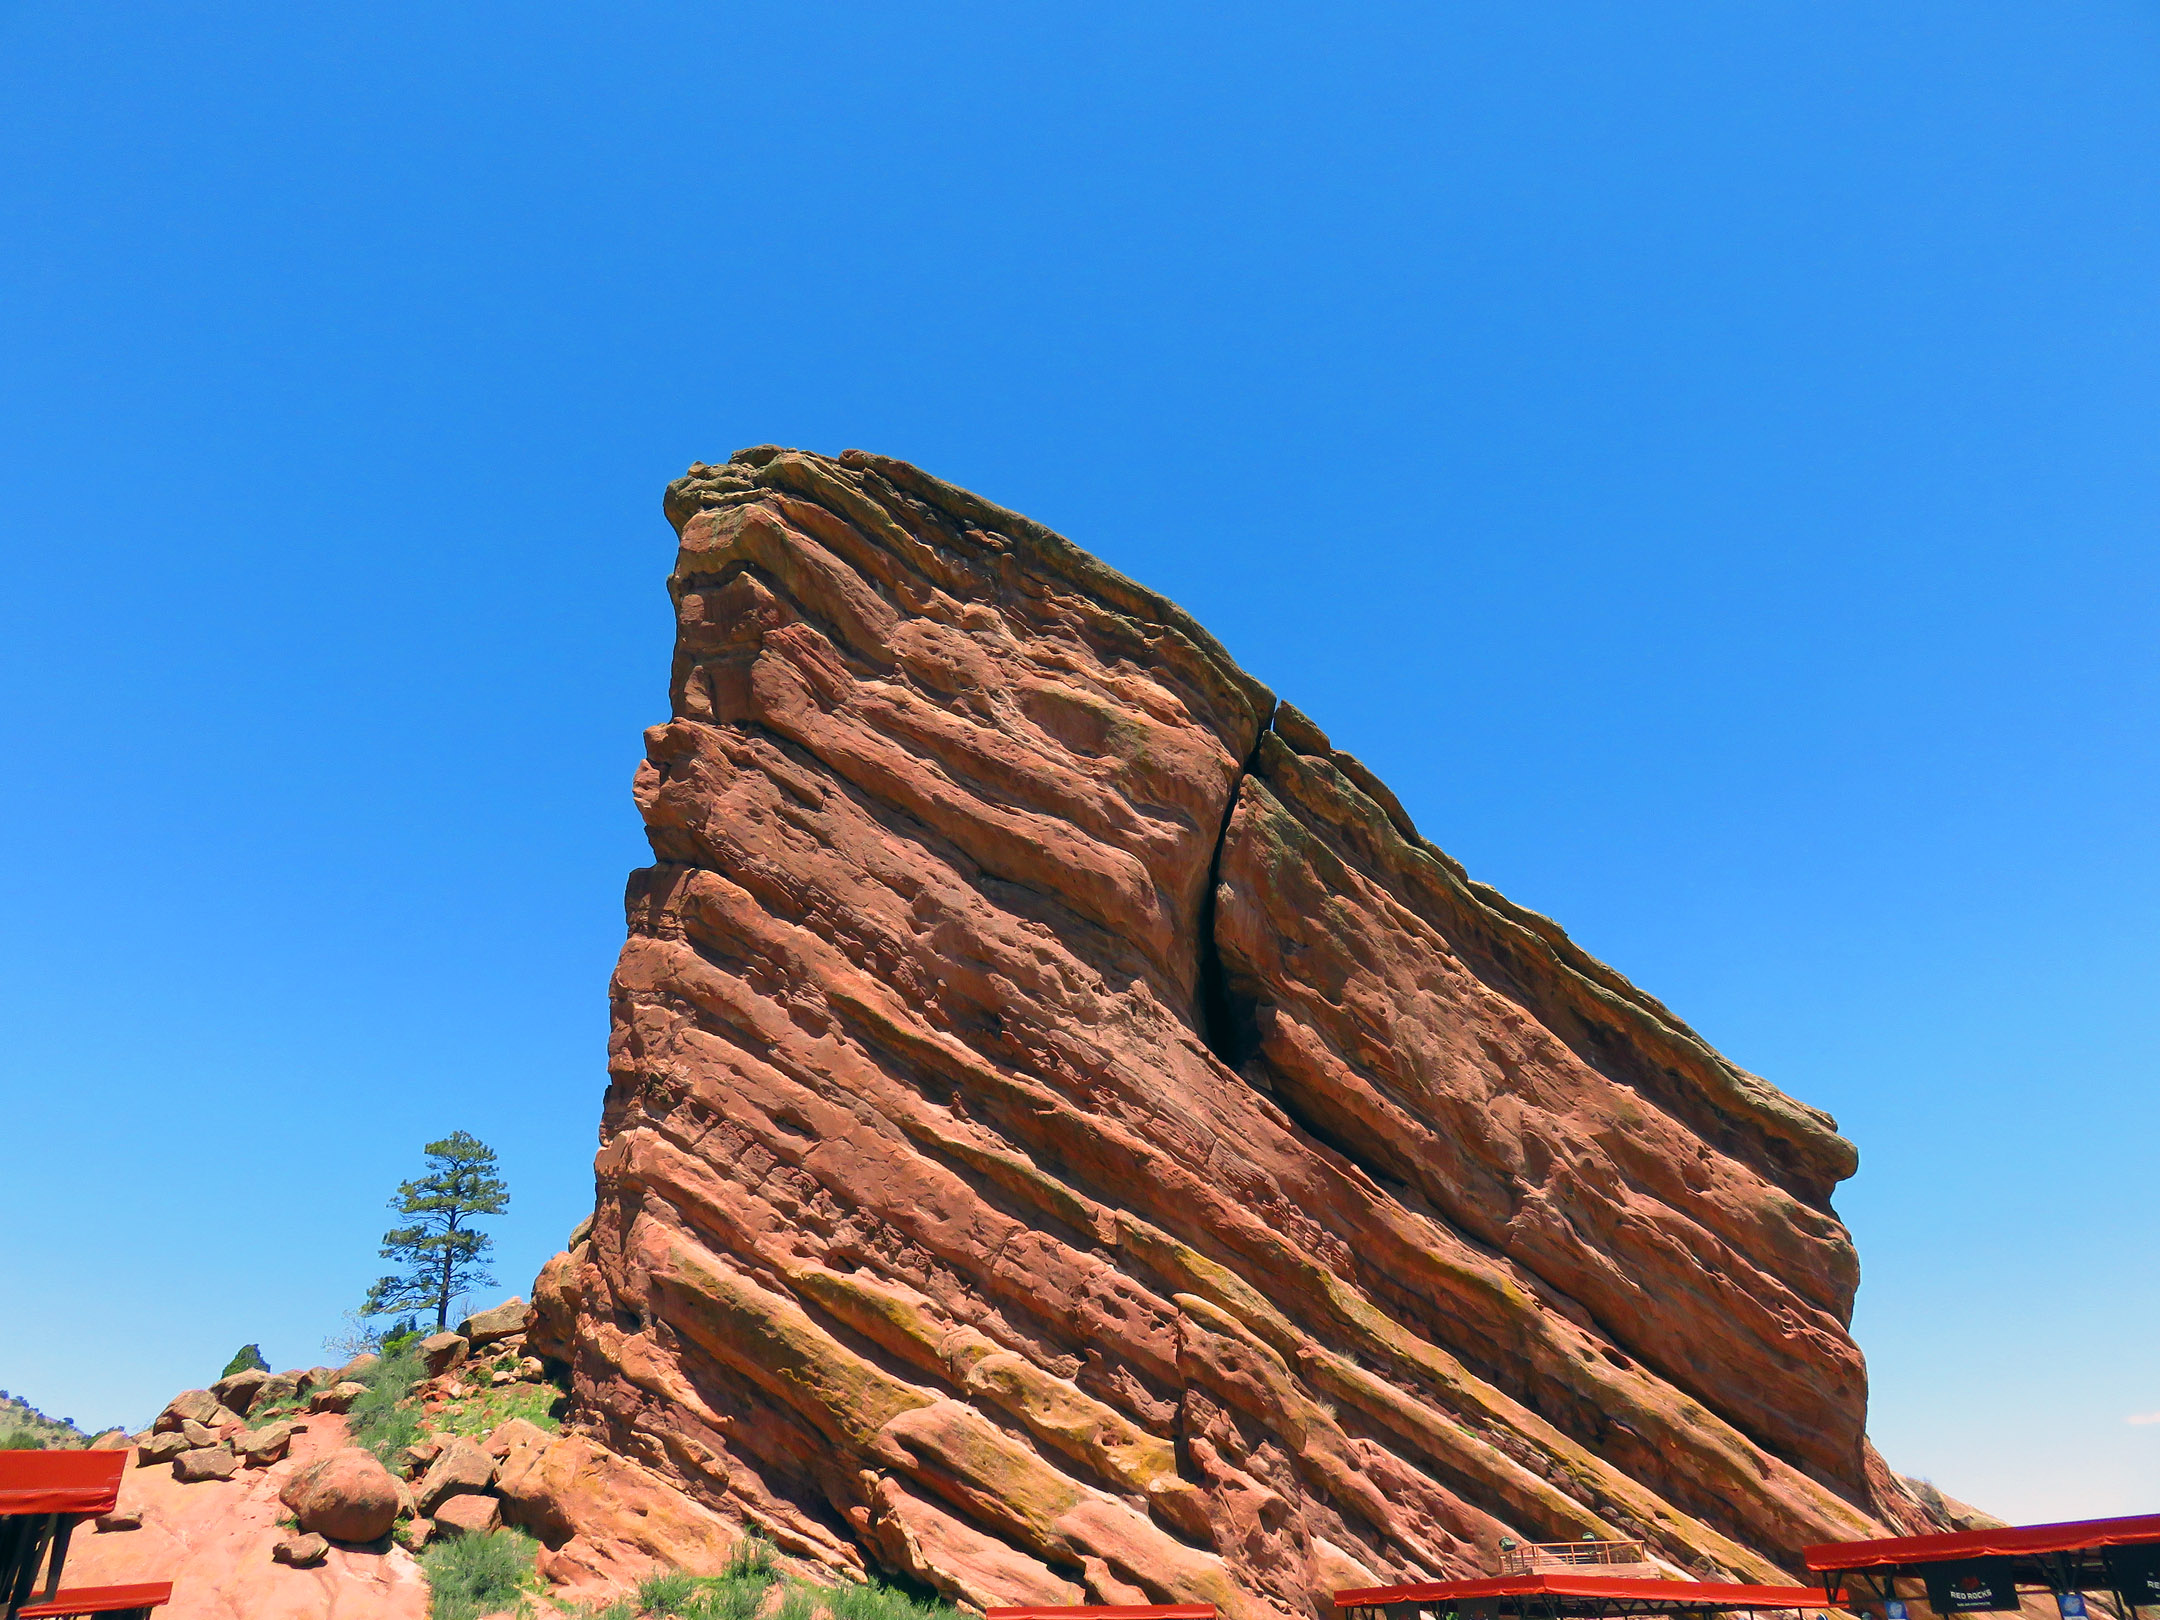 7. Red Rocks Amphitheatre